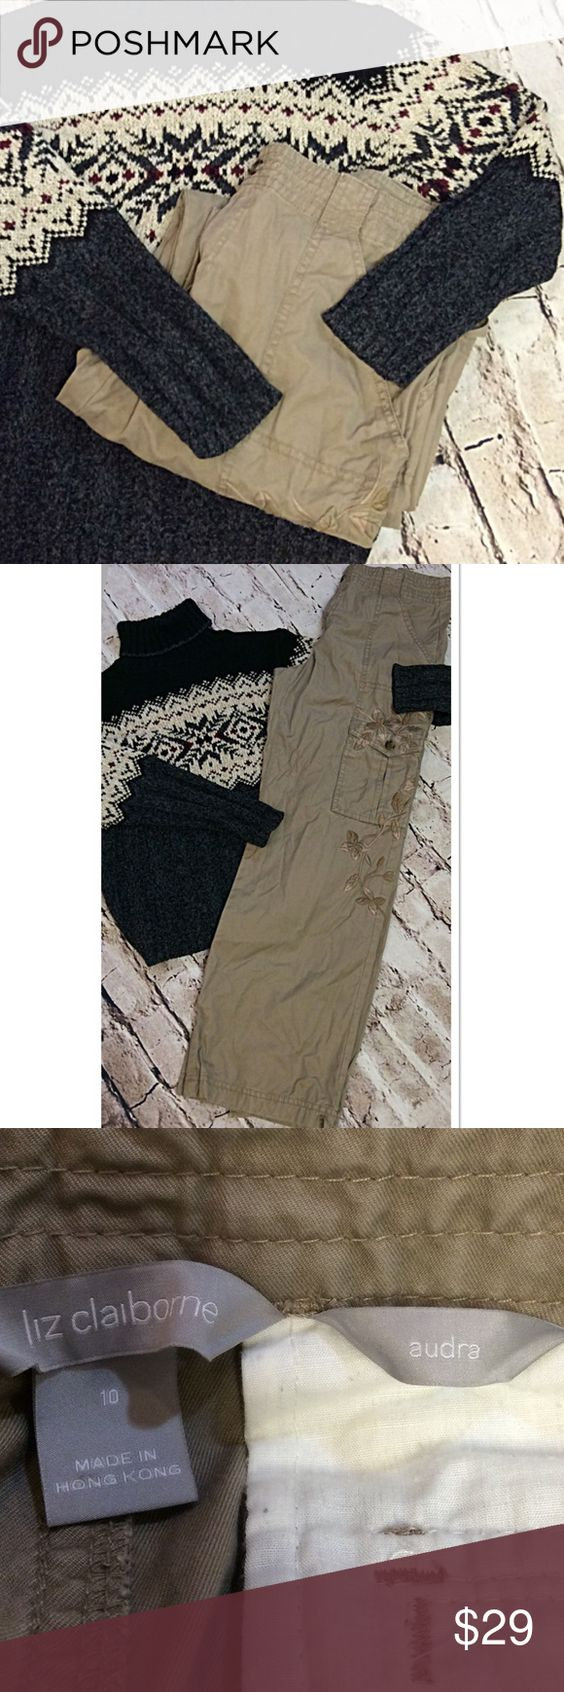 """LIZ CLAIBORNE EMBROIDERY EMBELLISHED CARGO PANTS These are so chic to be cargos. They have a. Beautiful design down the leg which drawstring at the bottom. Lying flat Waist 16"""" inseam 31.5"""" Liz Claiborne Pants"""